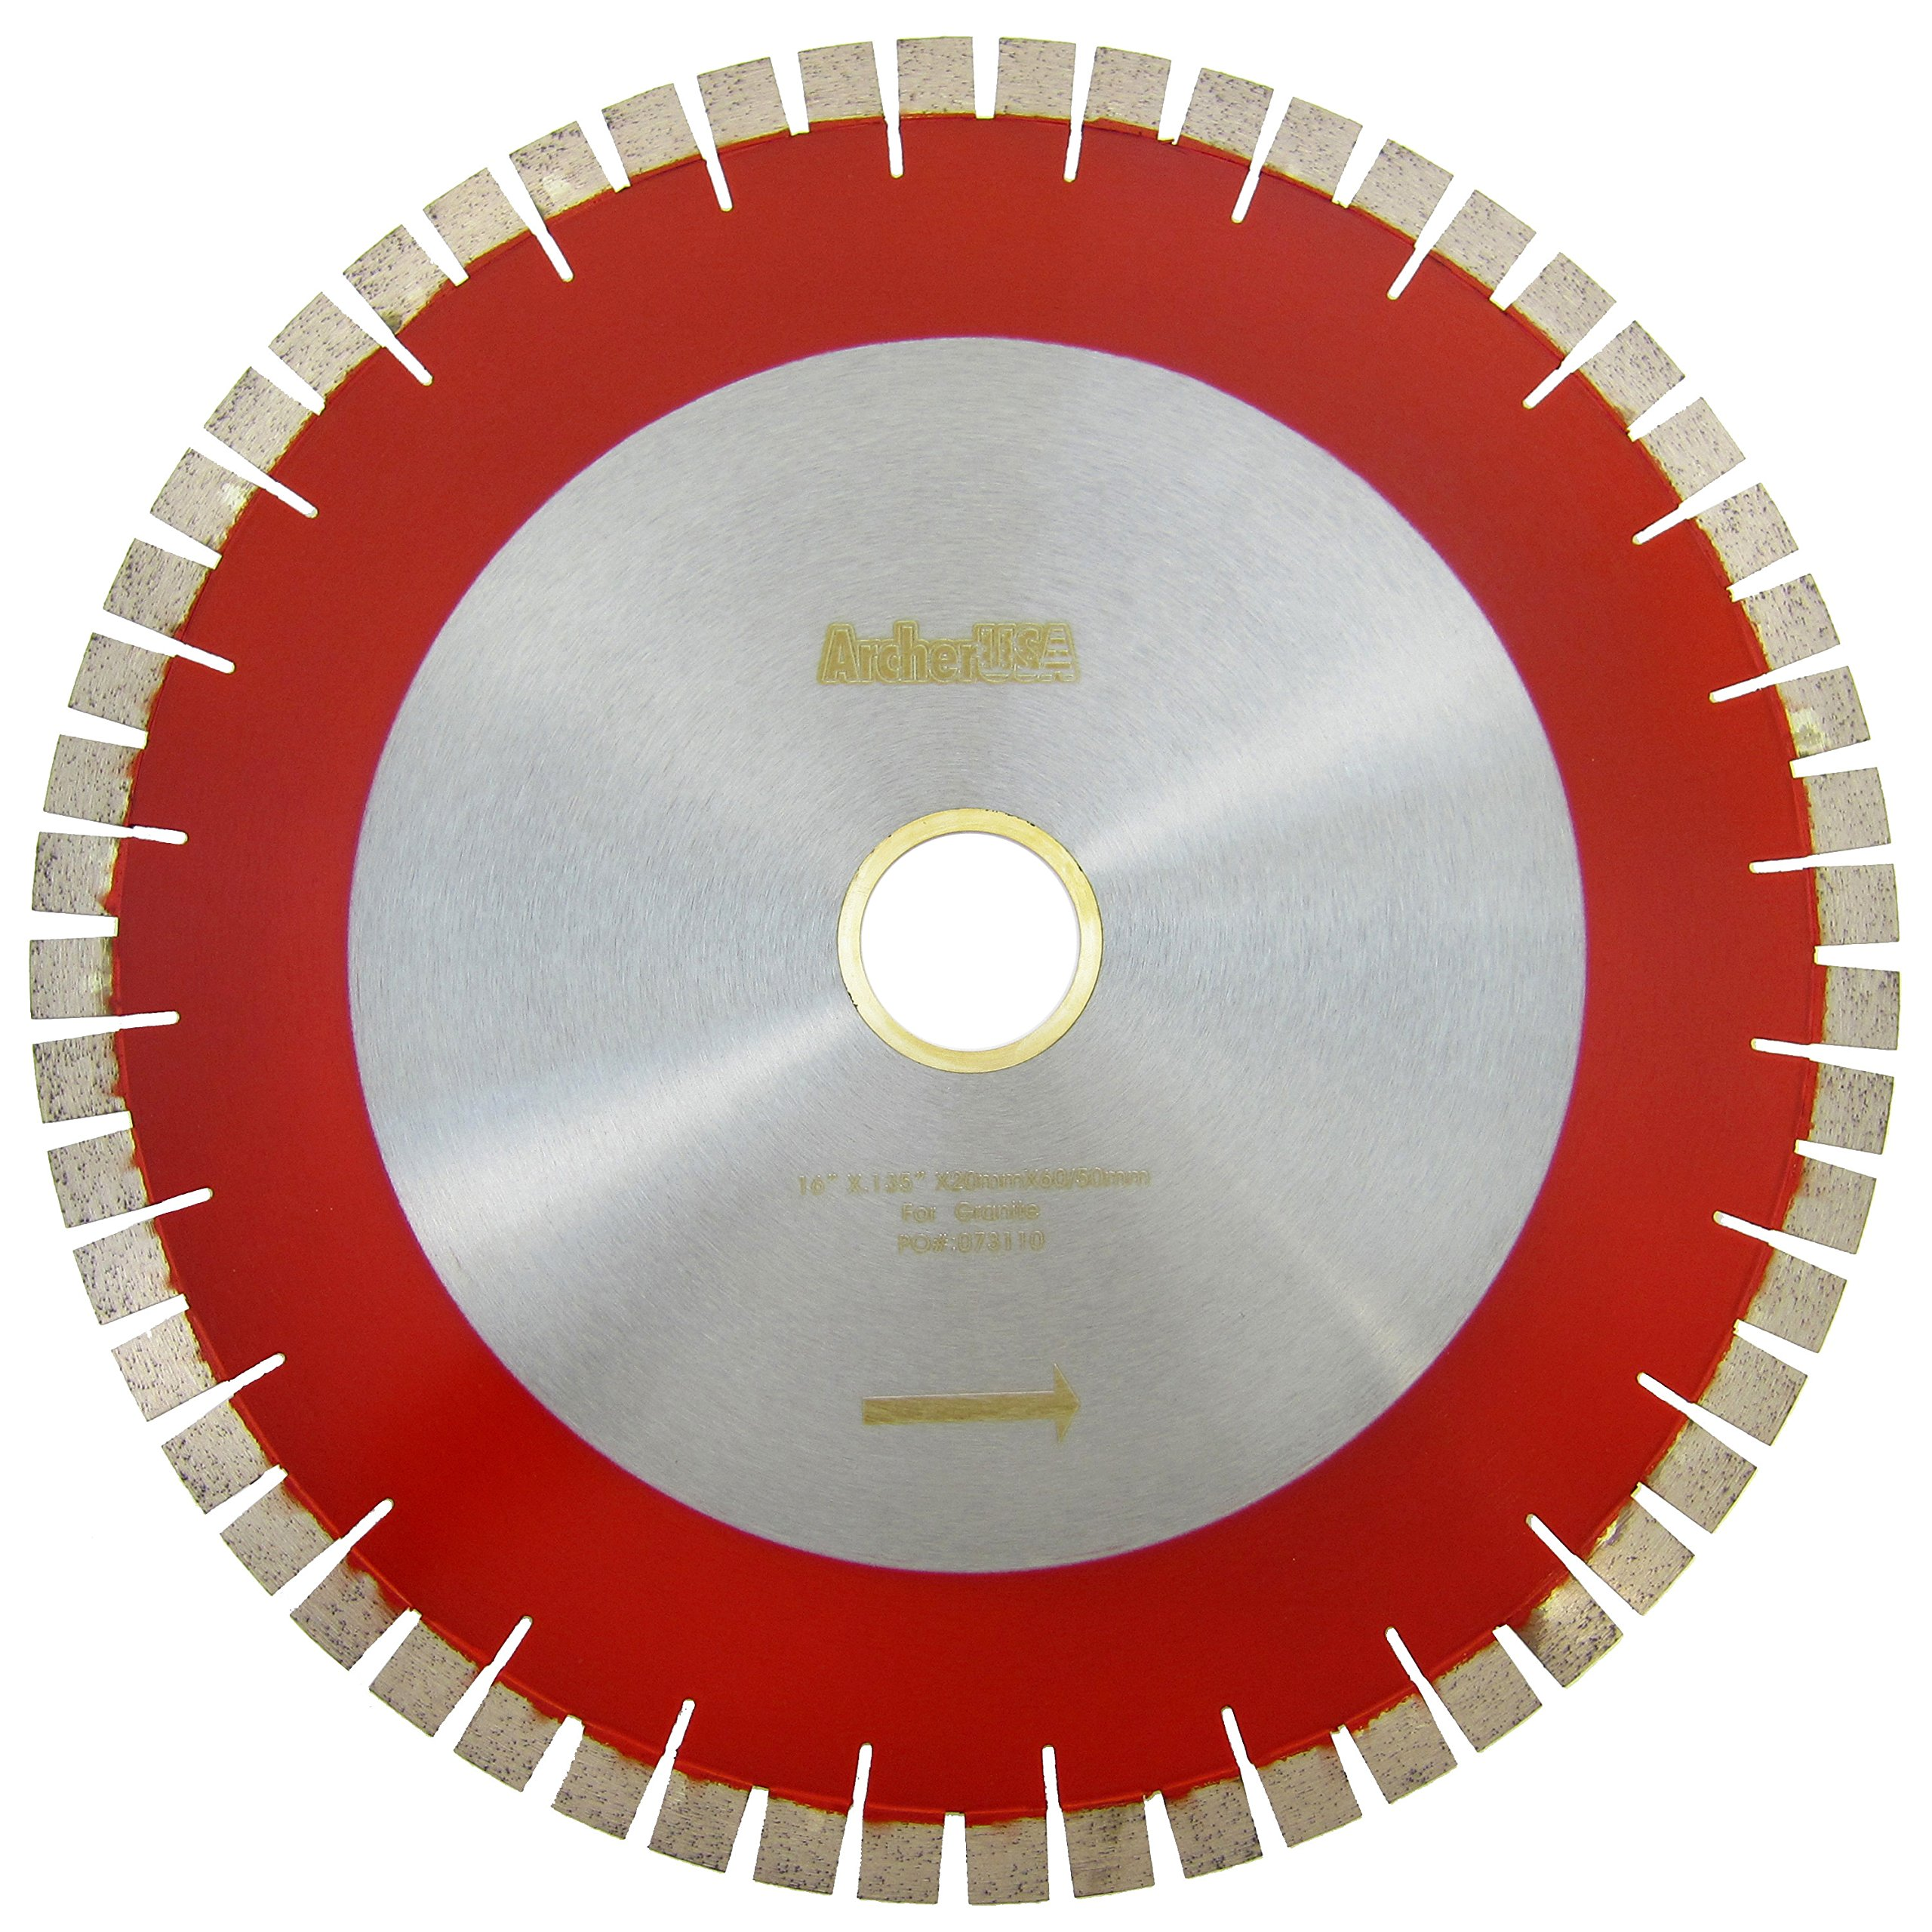 Archer USA 16 in. Bridge Saw Blade with V-Shaped Segment for Granite Cutting